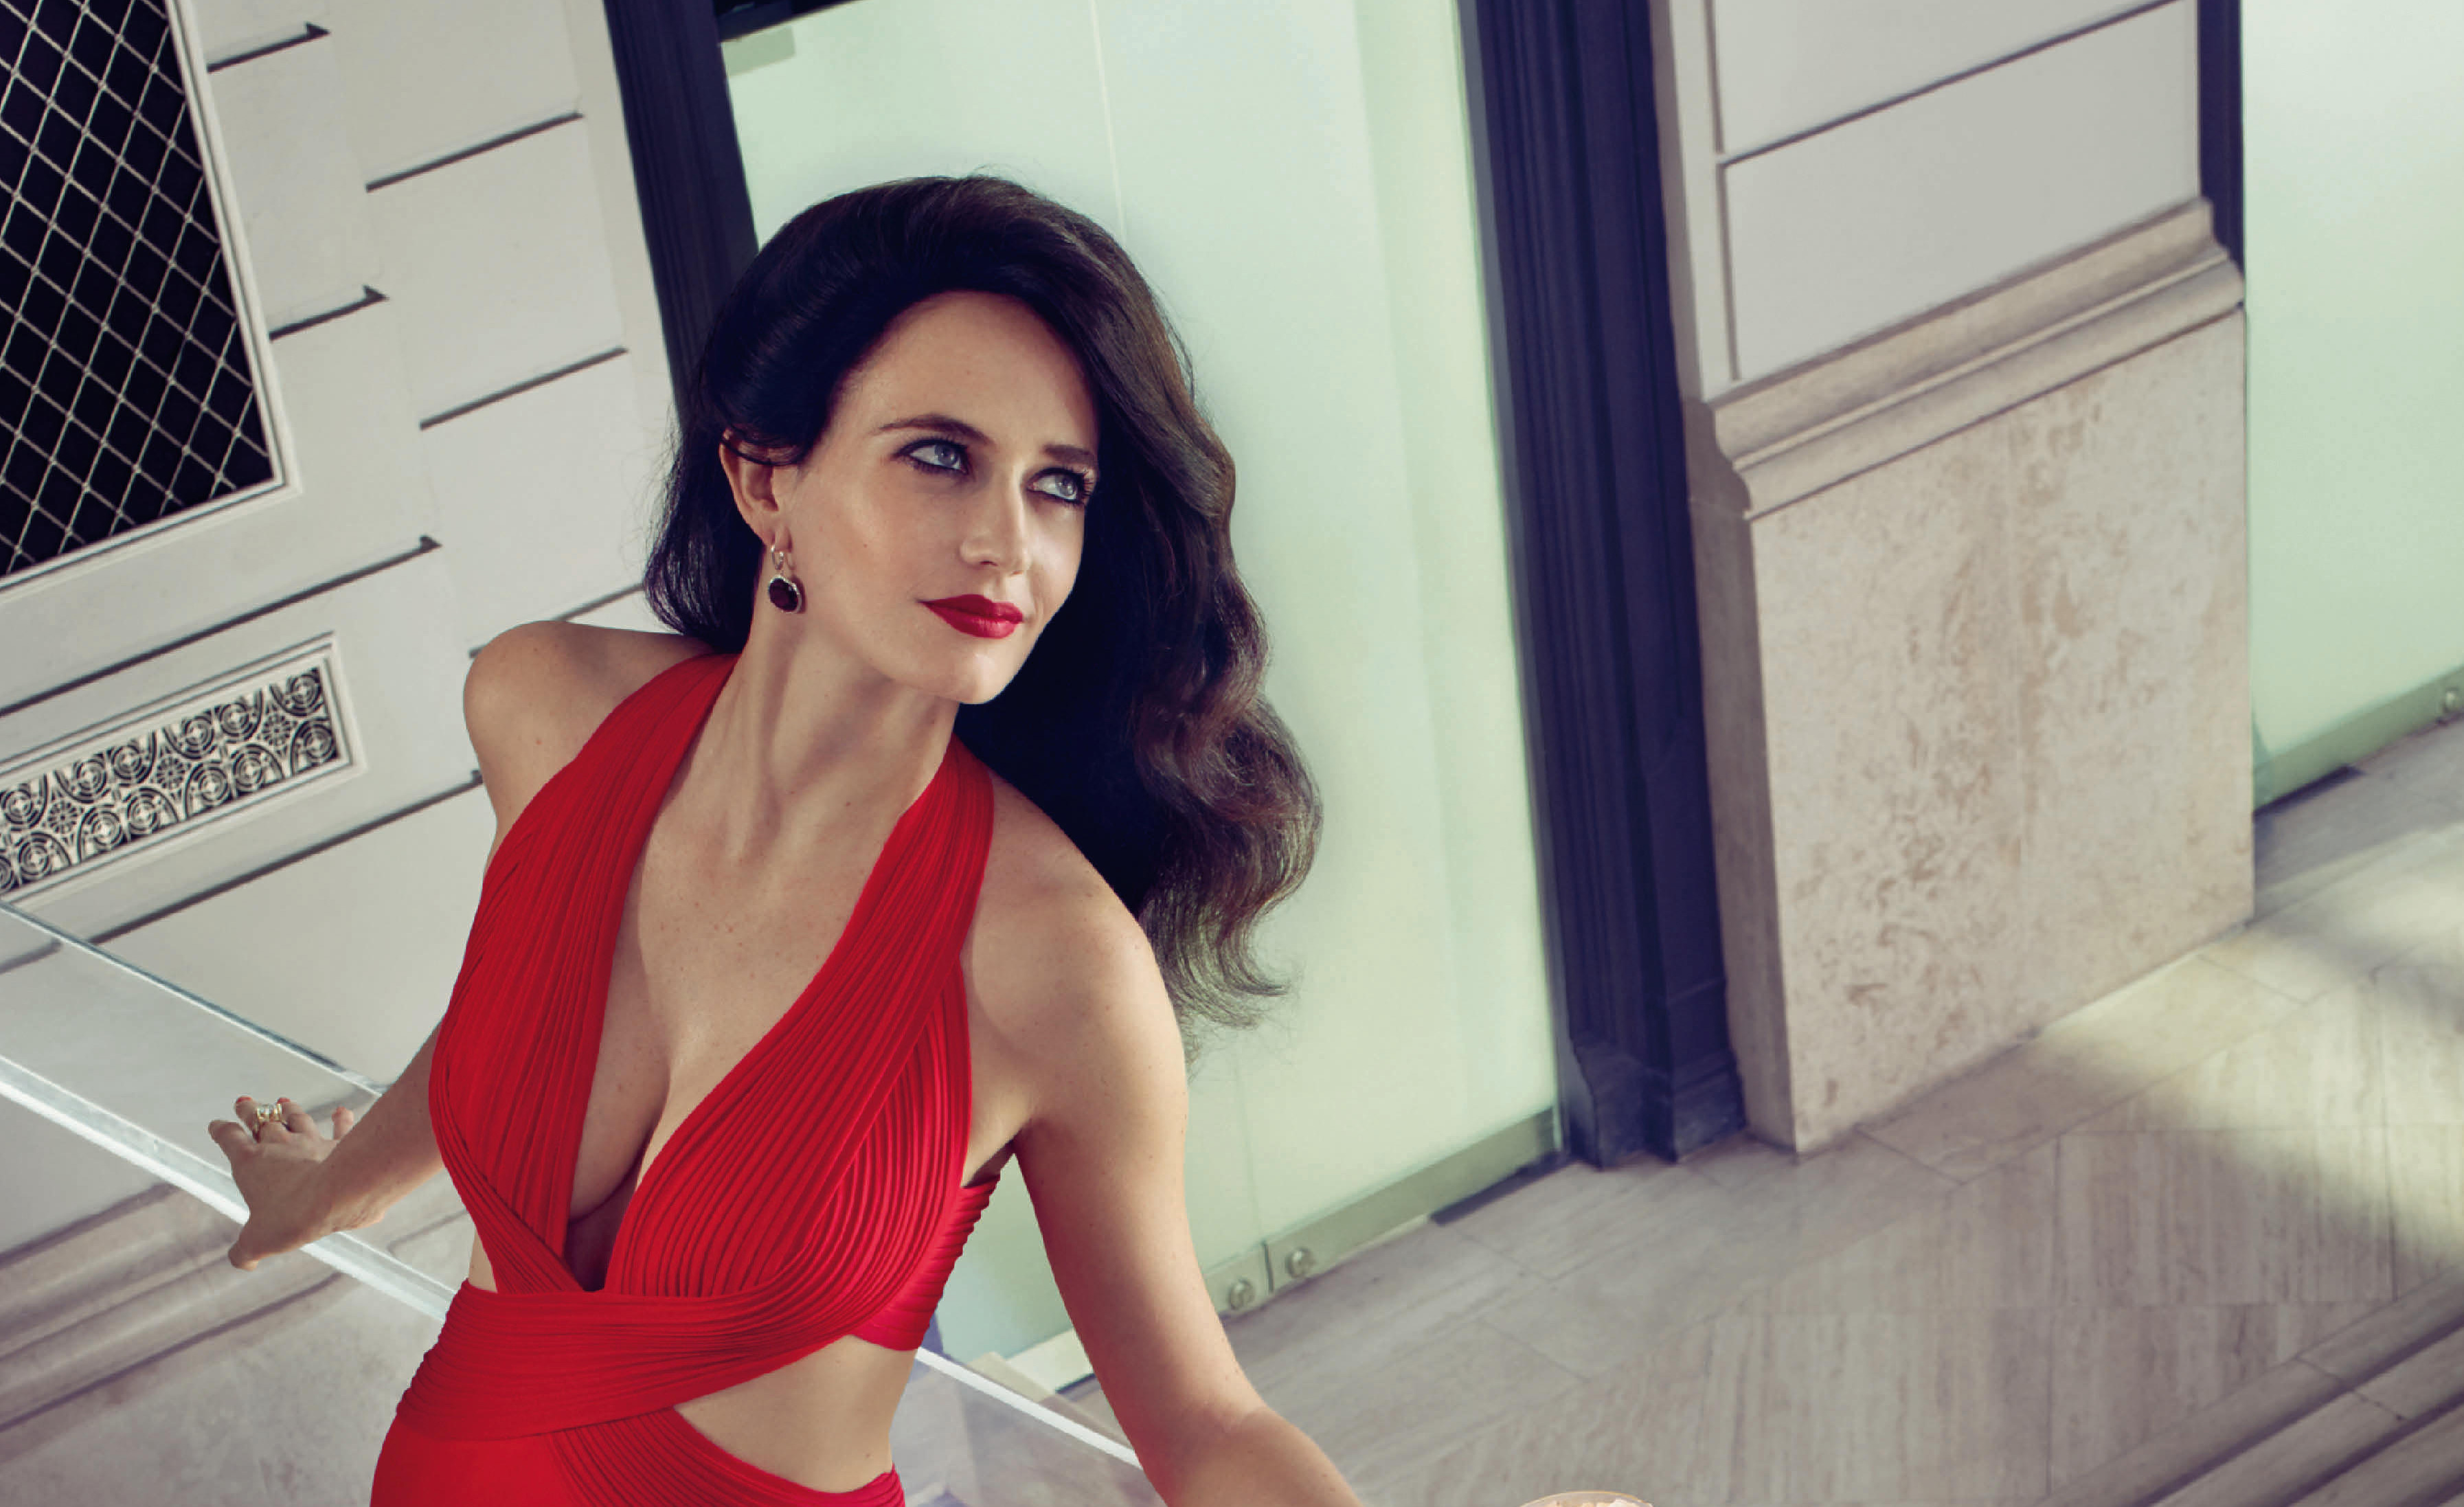 3d Wallpaper For Mobile 480x800 Eva Green Hot In Red 4k Hd Celebrities 4k Wallpapers